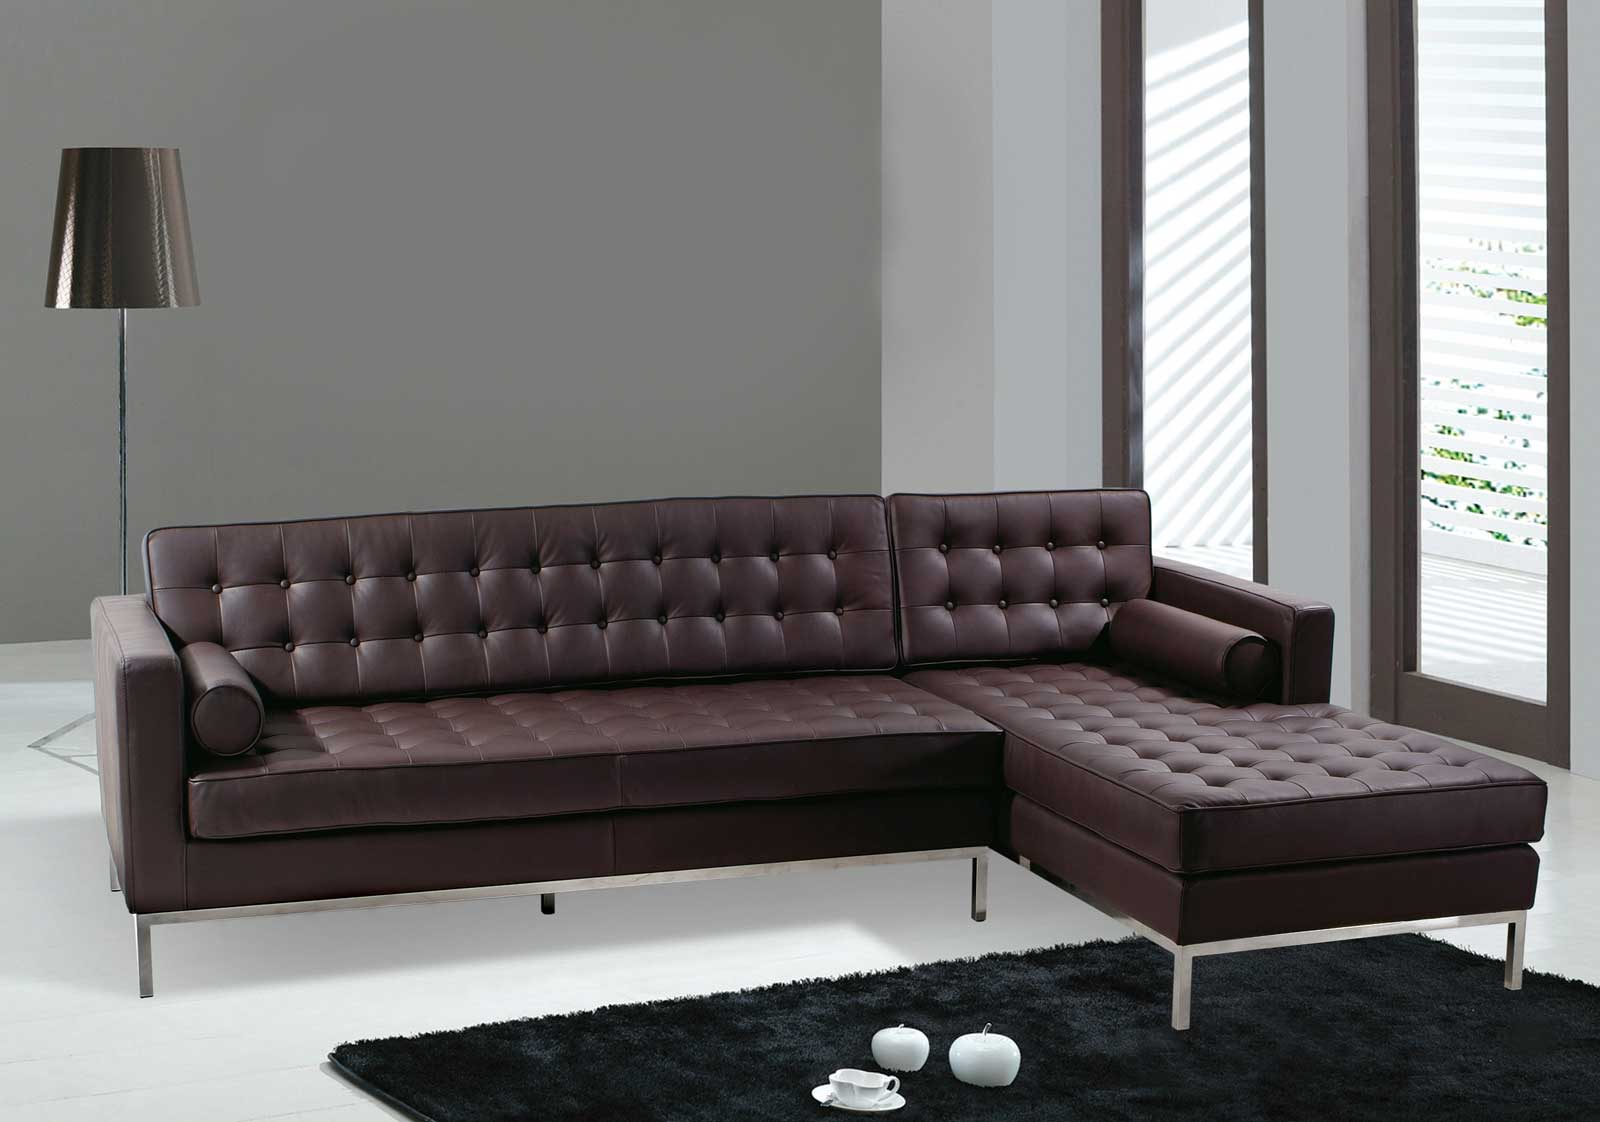 Modern sectional sofas for office waiting room for Contemporary sectional sofas